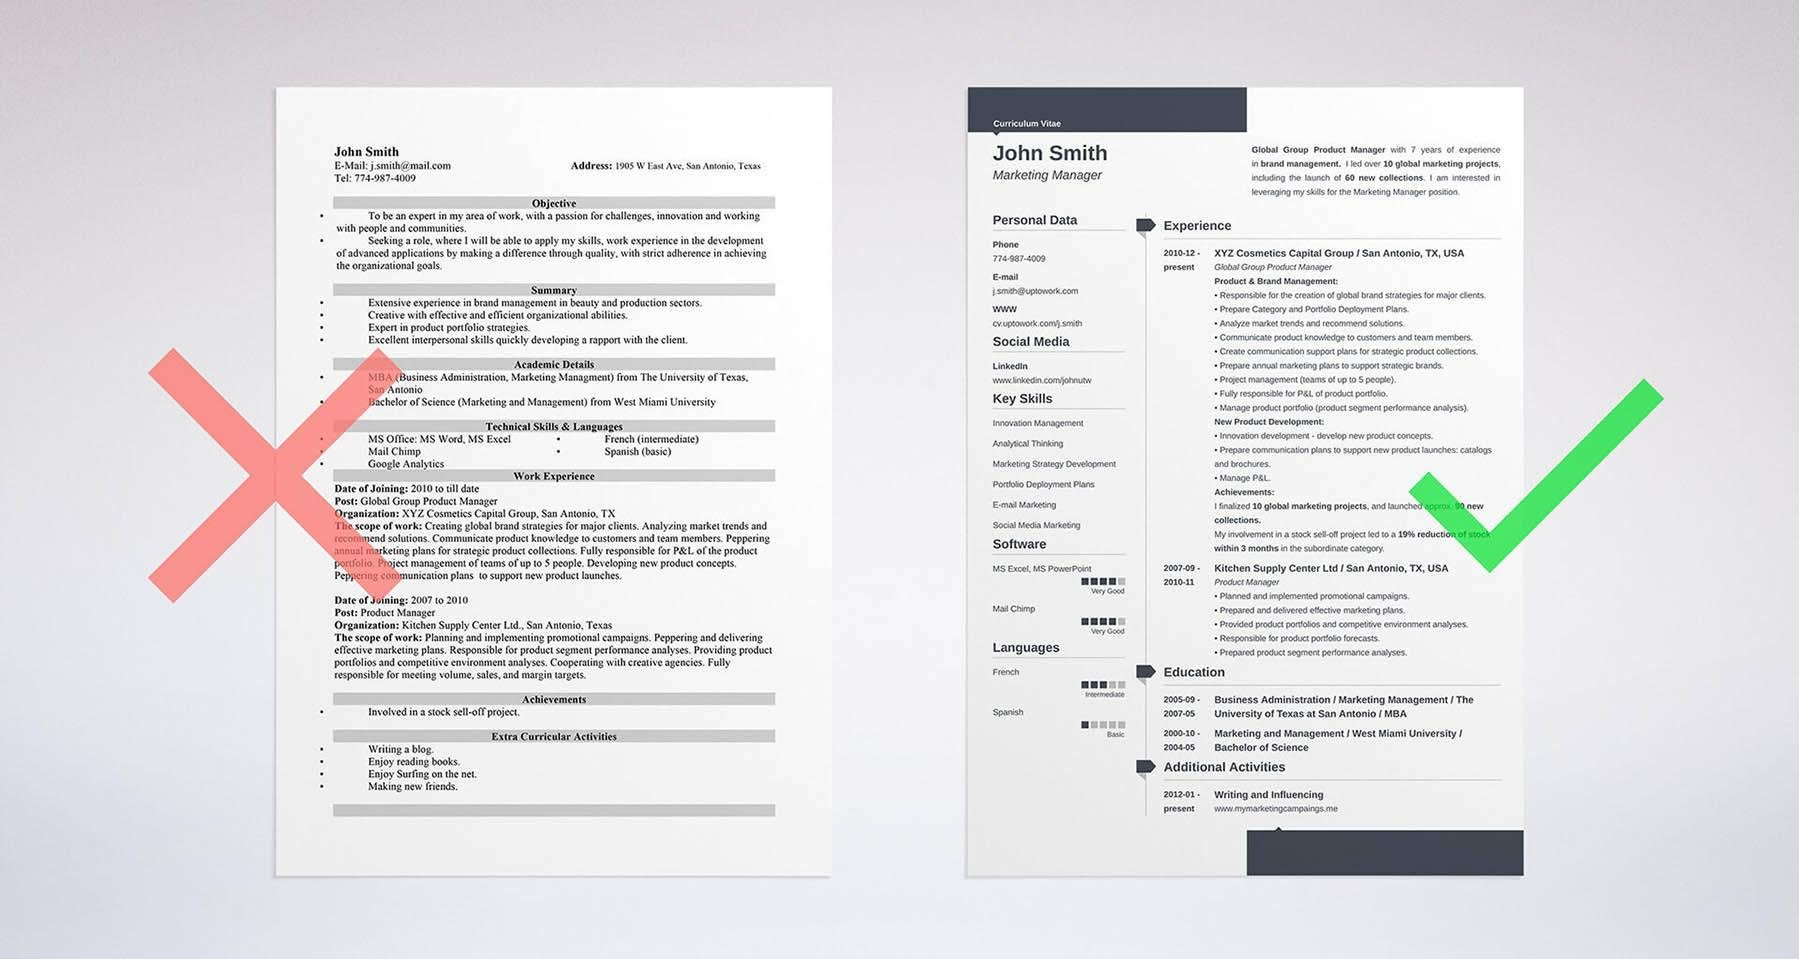 sample resume template see 20 other templates and create your resume here - Sample Resume Builder